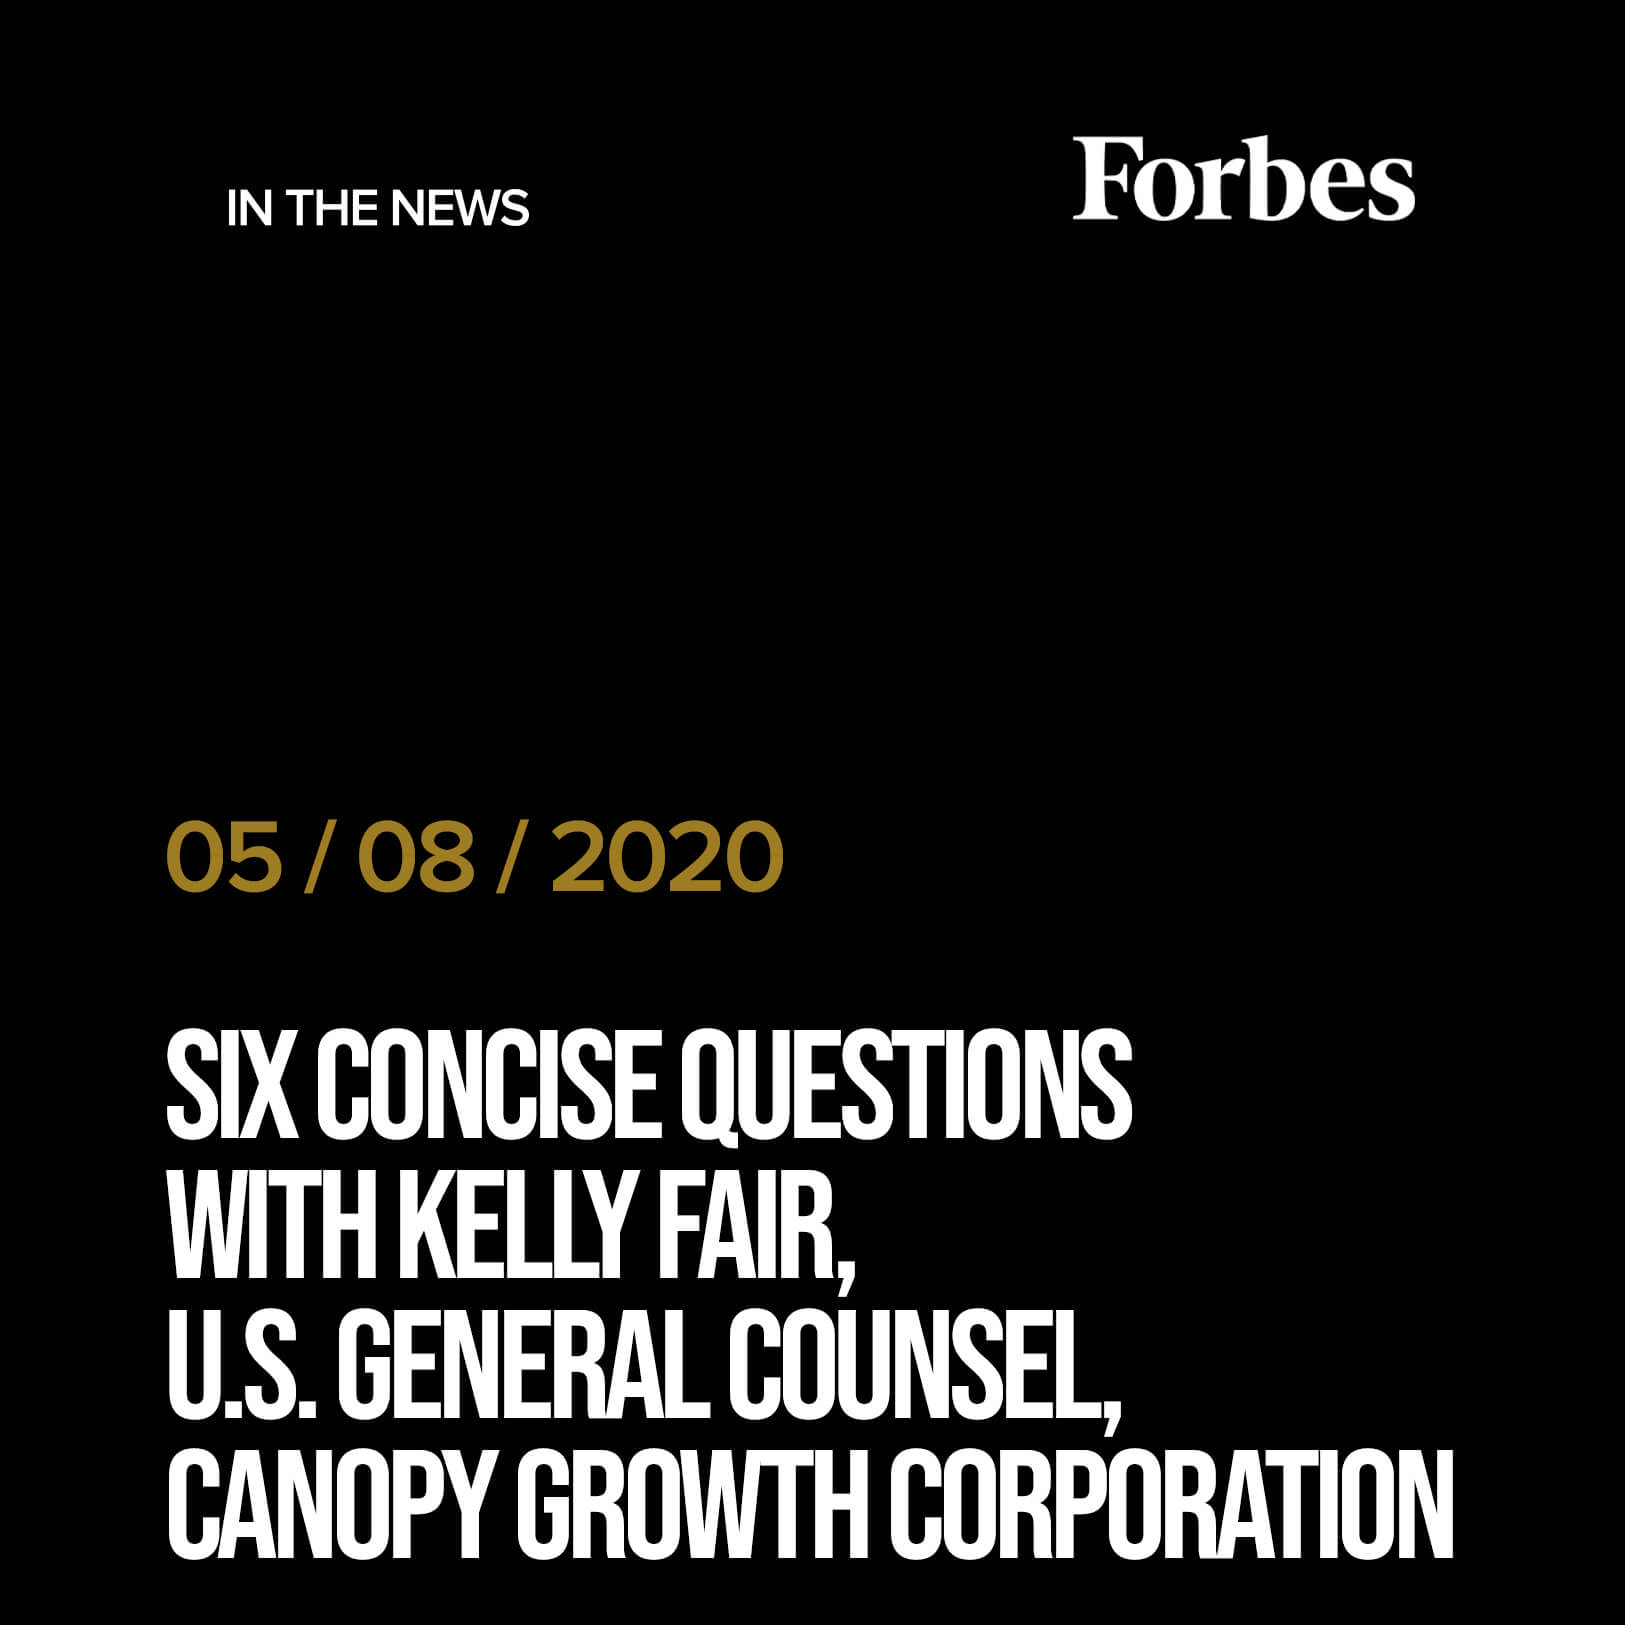 Six Concise Questions With Kelly Fair, U.S. General Counsel, Canopy Growth Corporation